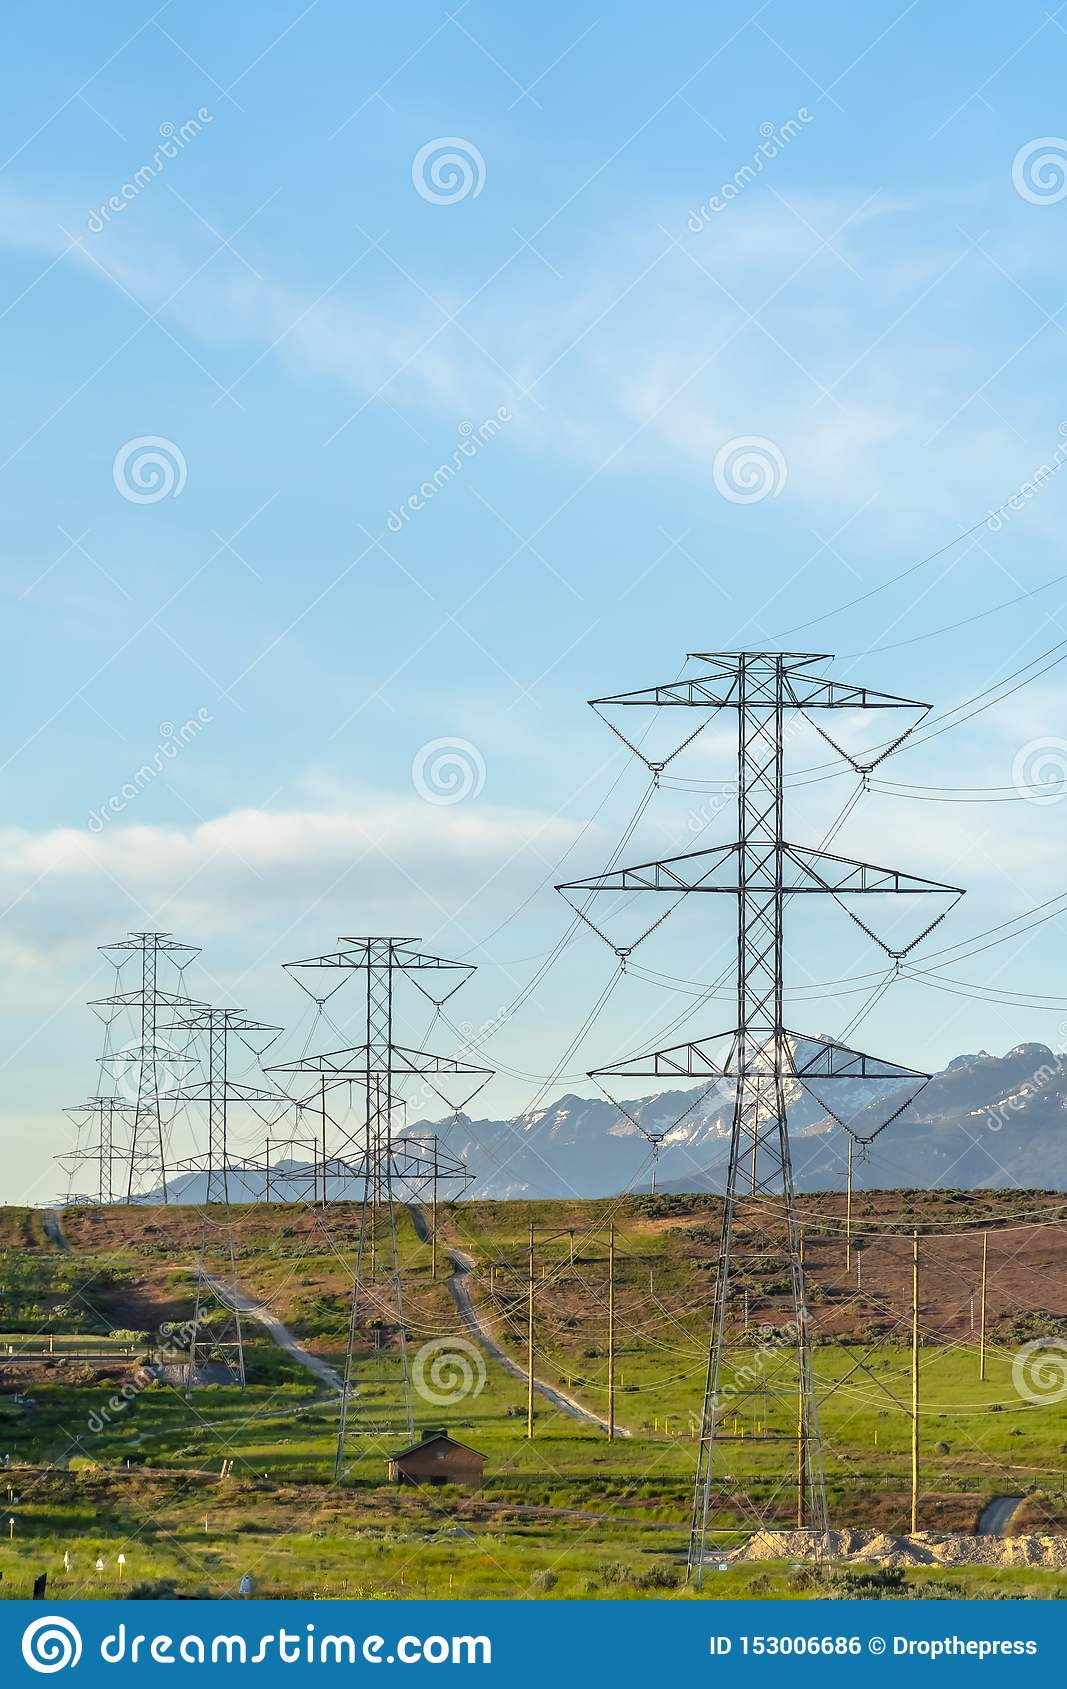 Towering power lines in the valley against snow capped mountain and blue sky